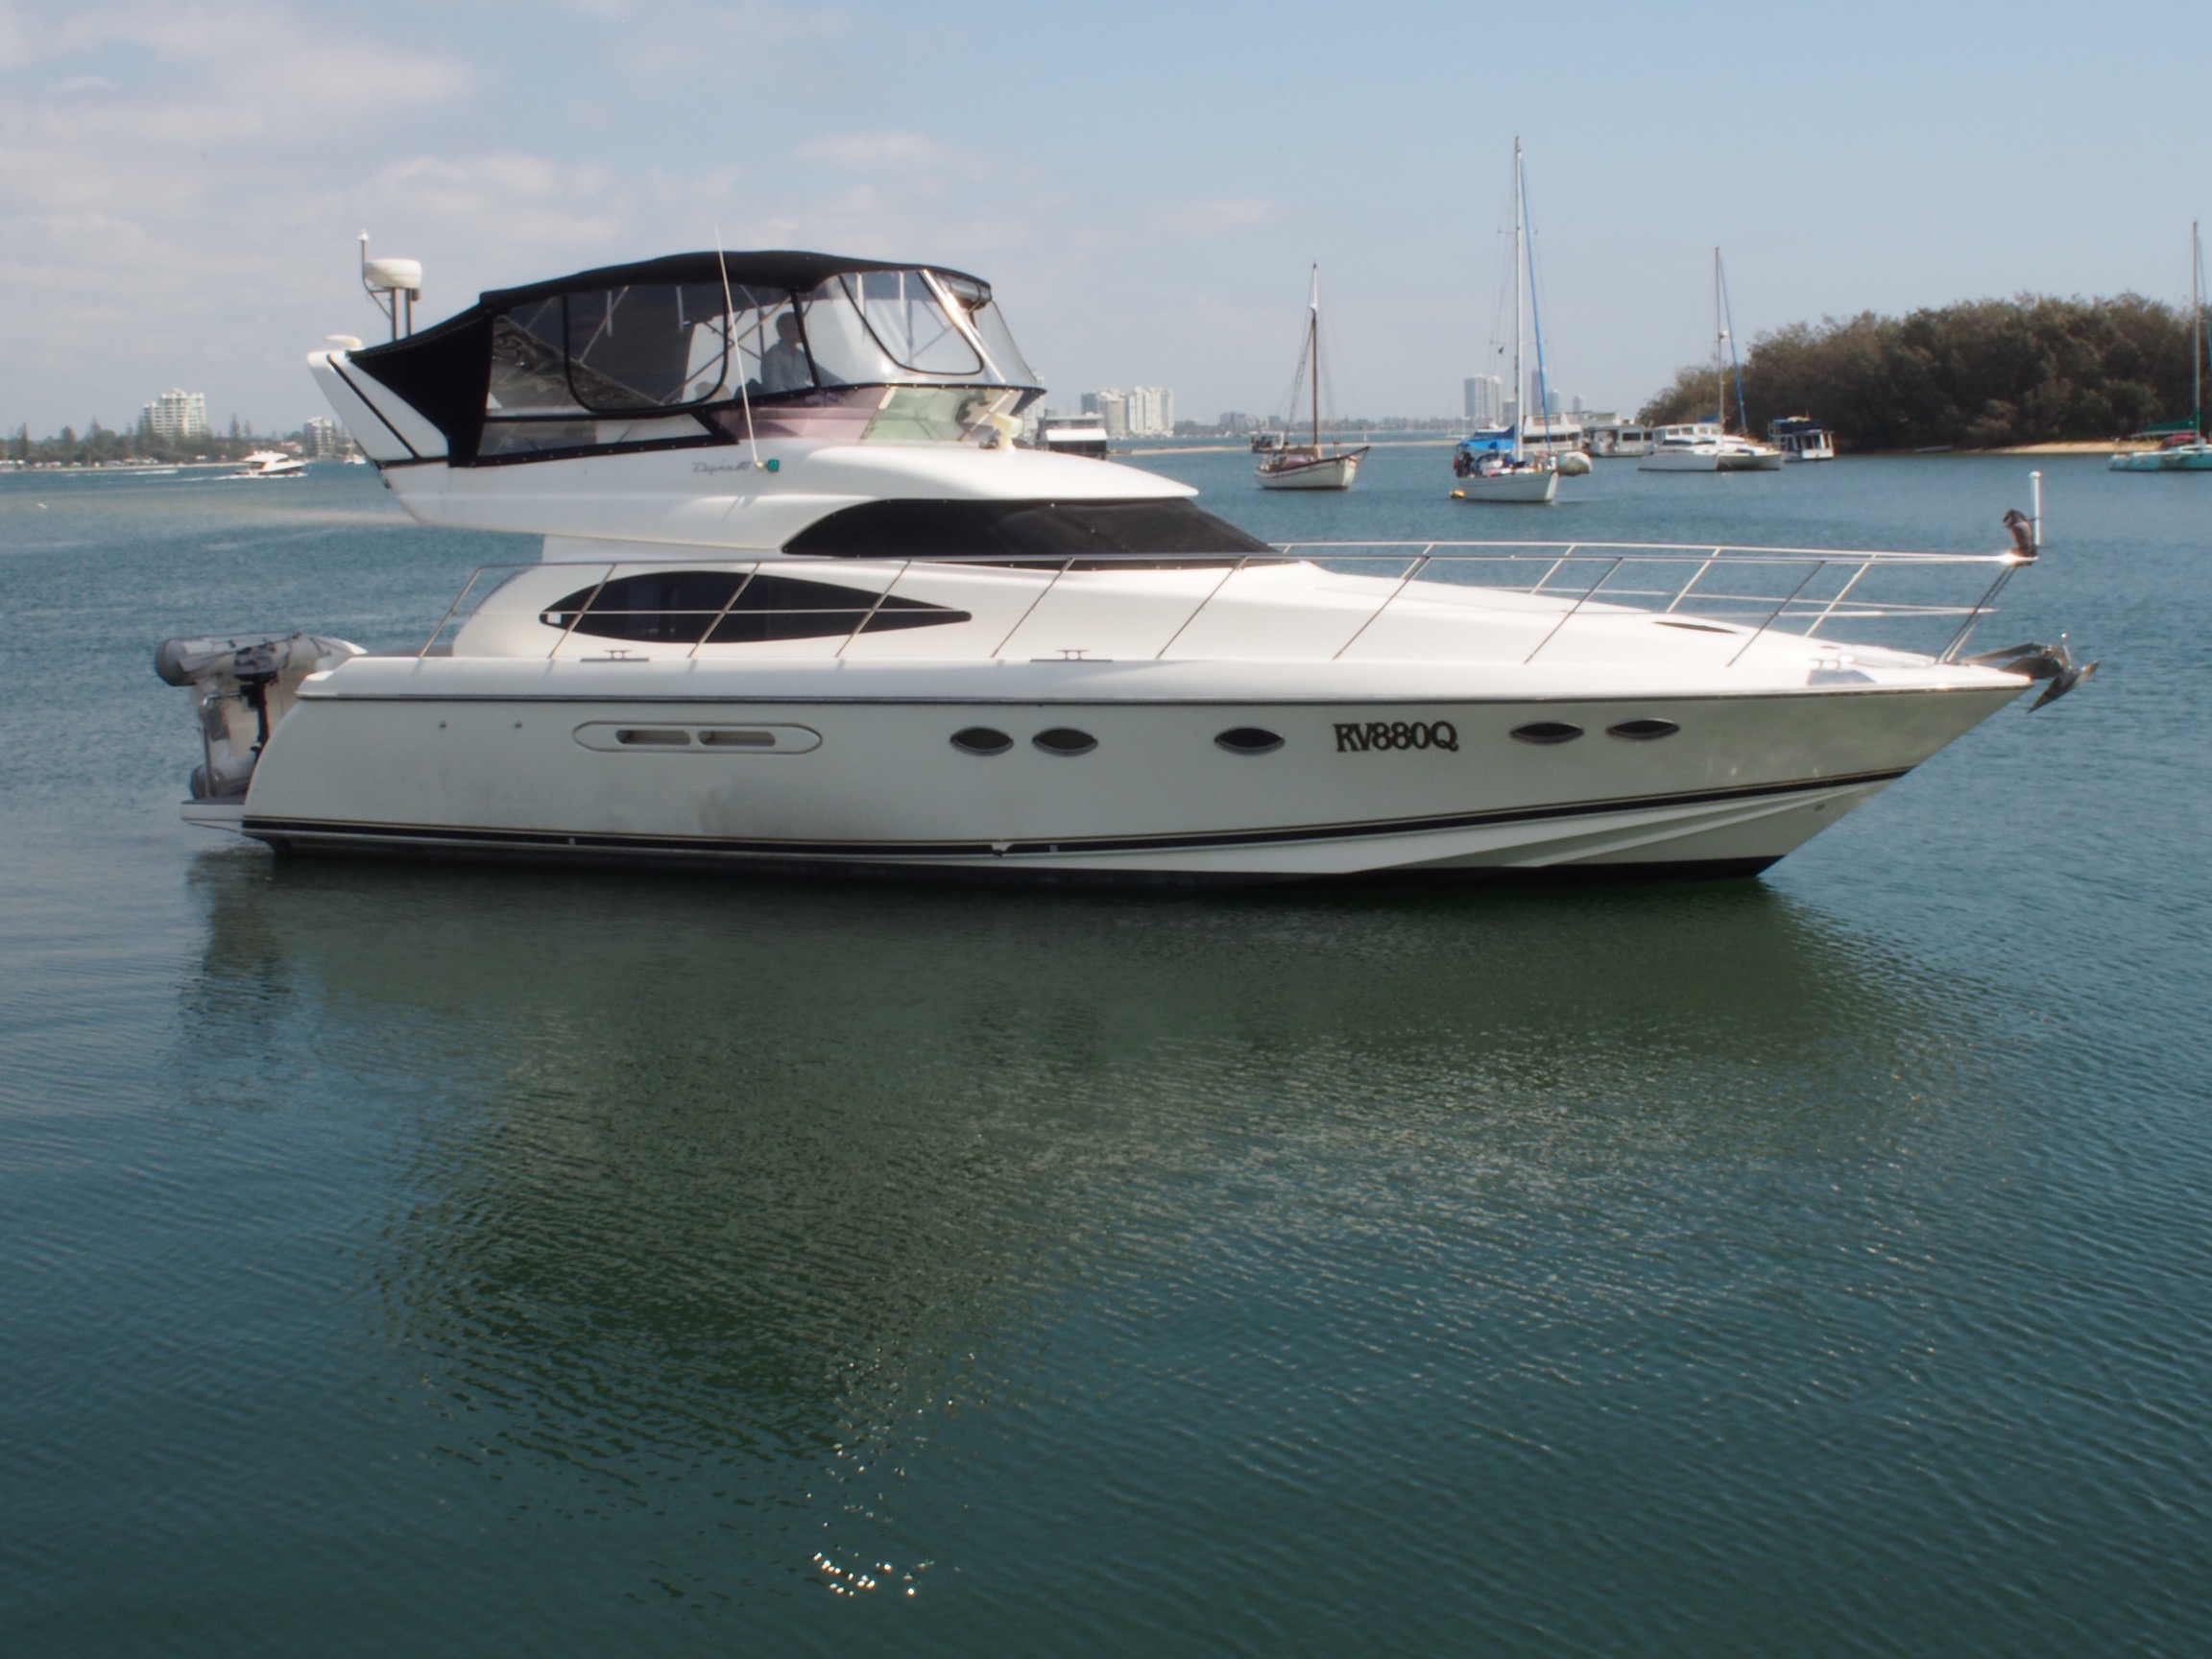 Dyna 48 2000 Model, Good Clean Low Hours Boat